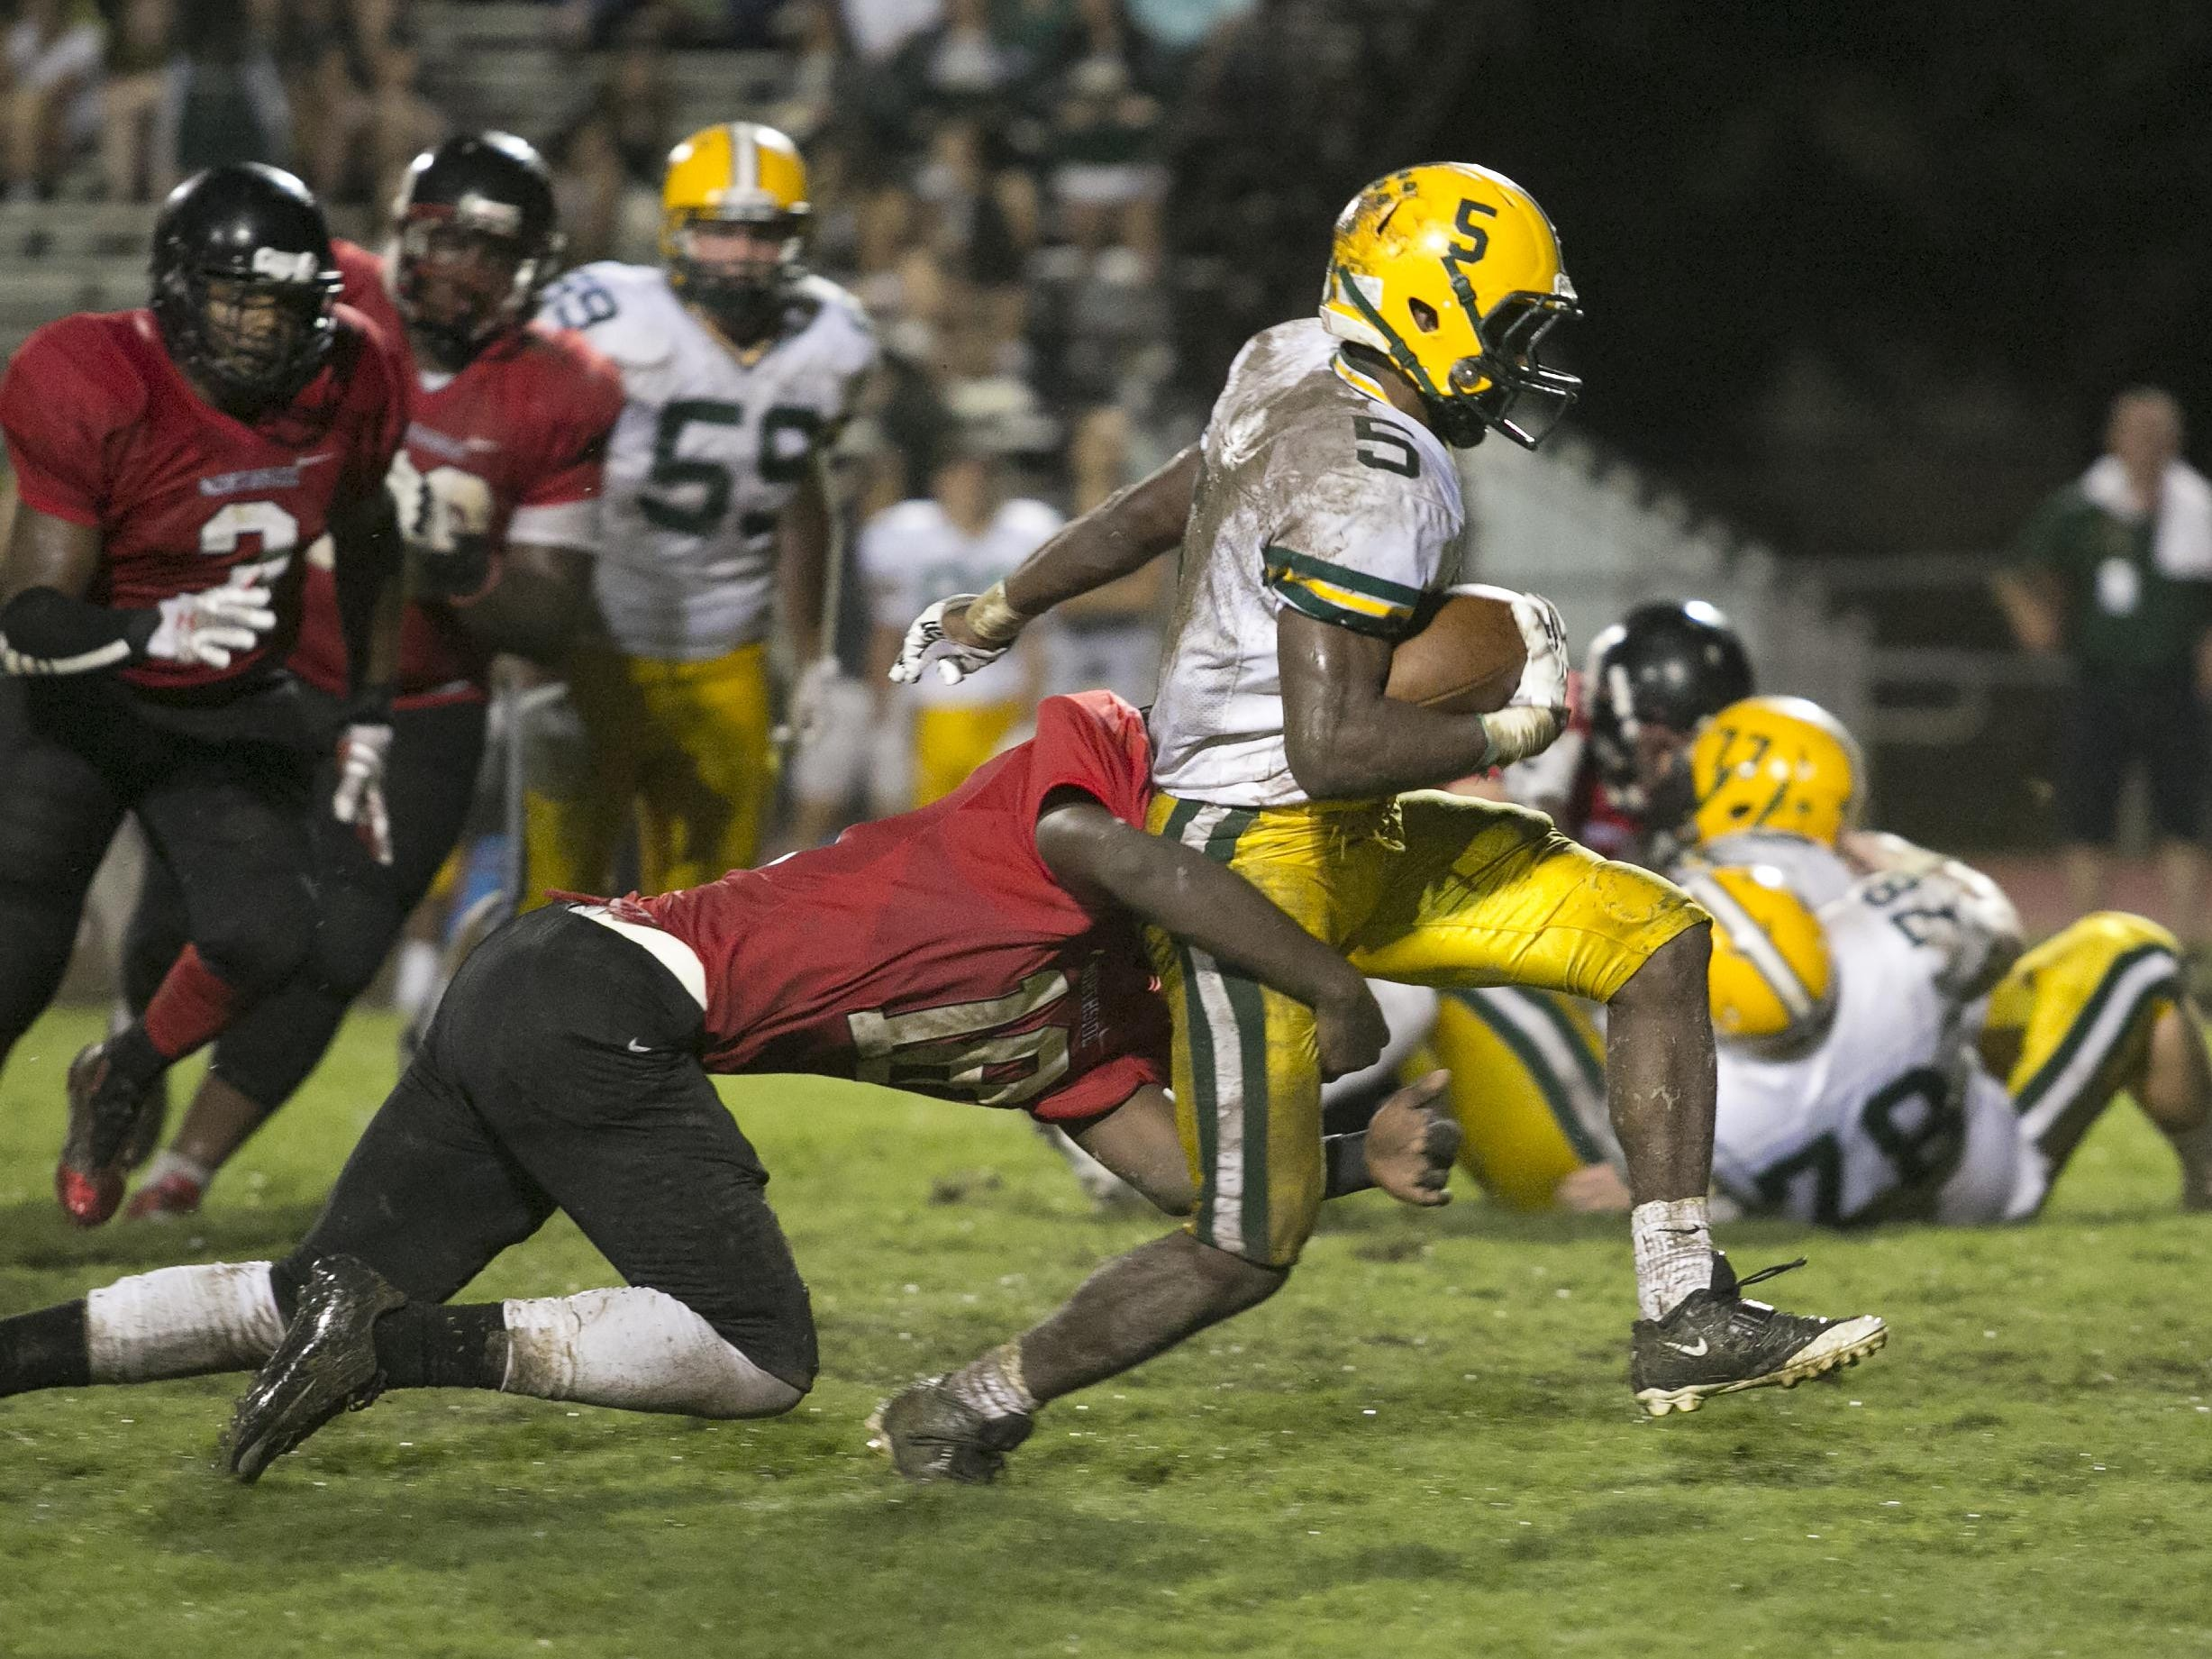 Cecilia's Raymond Calais breaks tackles to gain extra yardage during the Bulldogs' win over Northside.